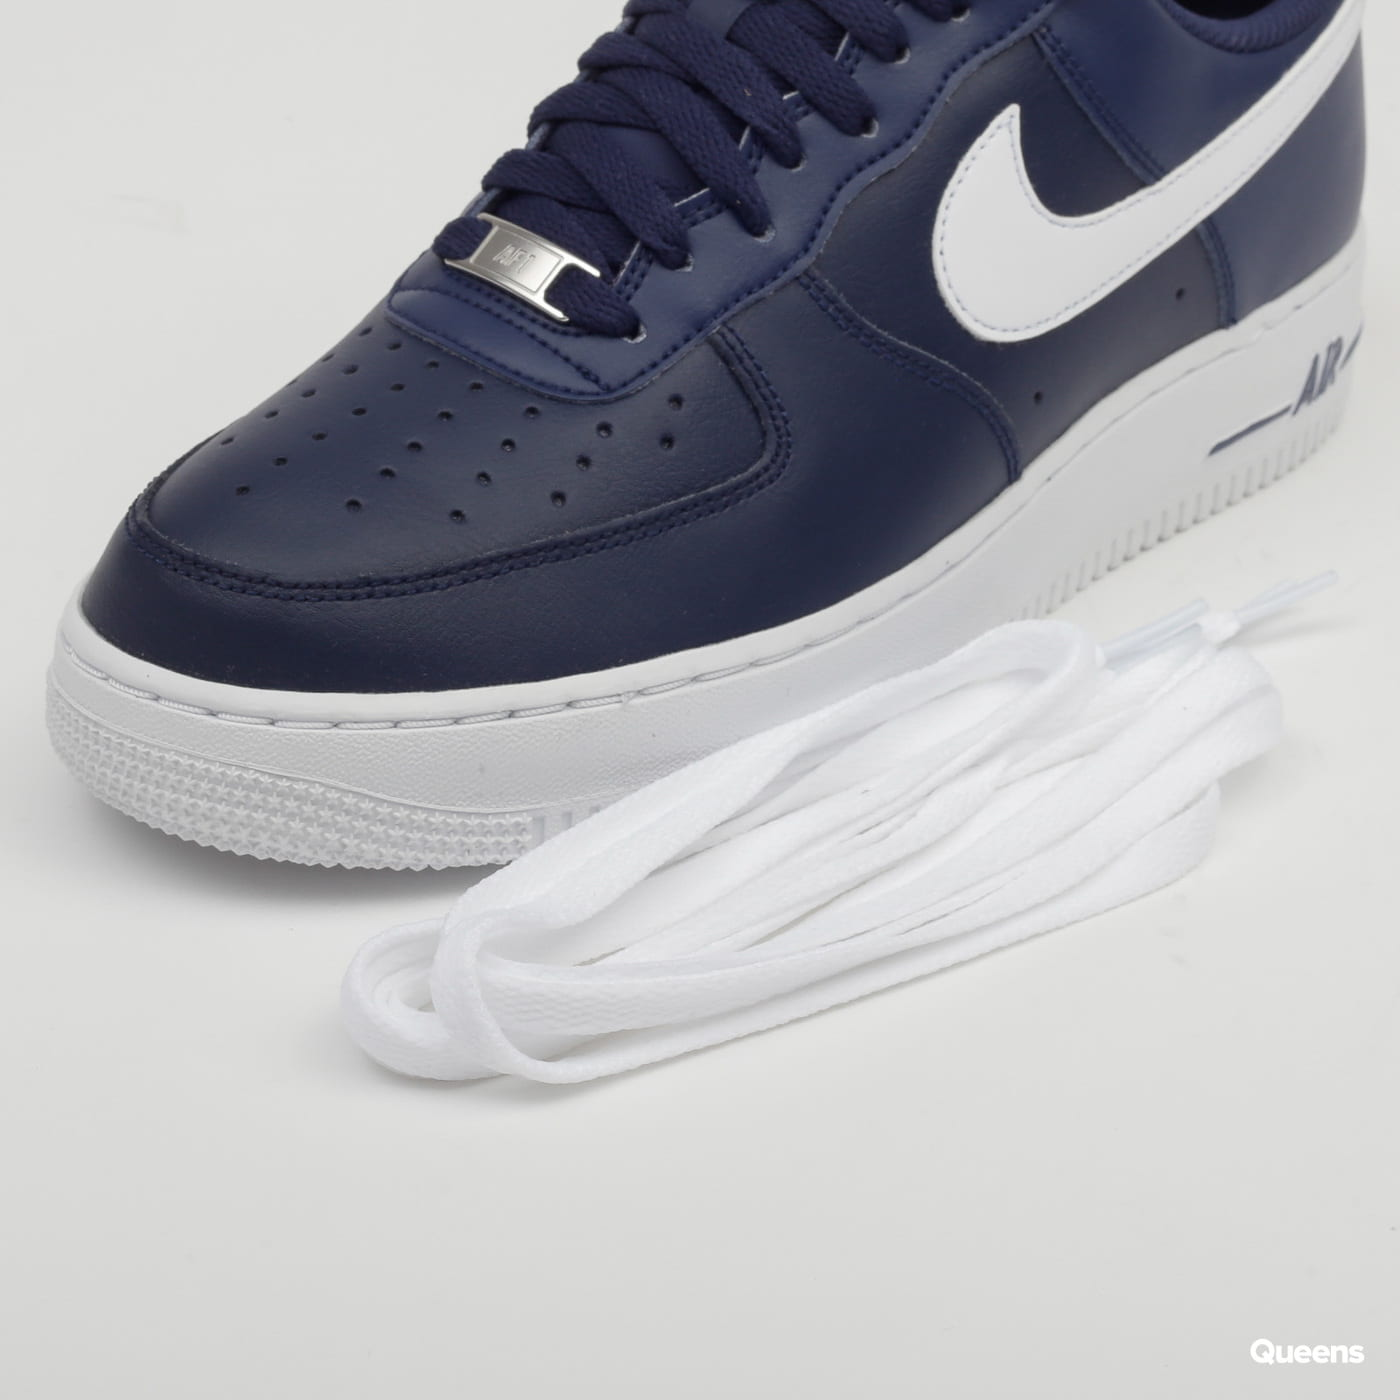 Nike Air Force 1 '07 AN20 midnight navy / white